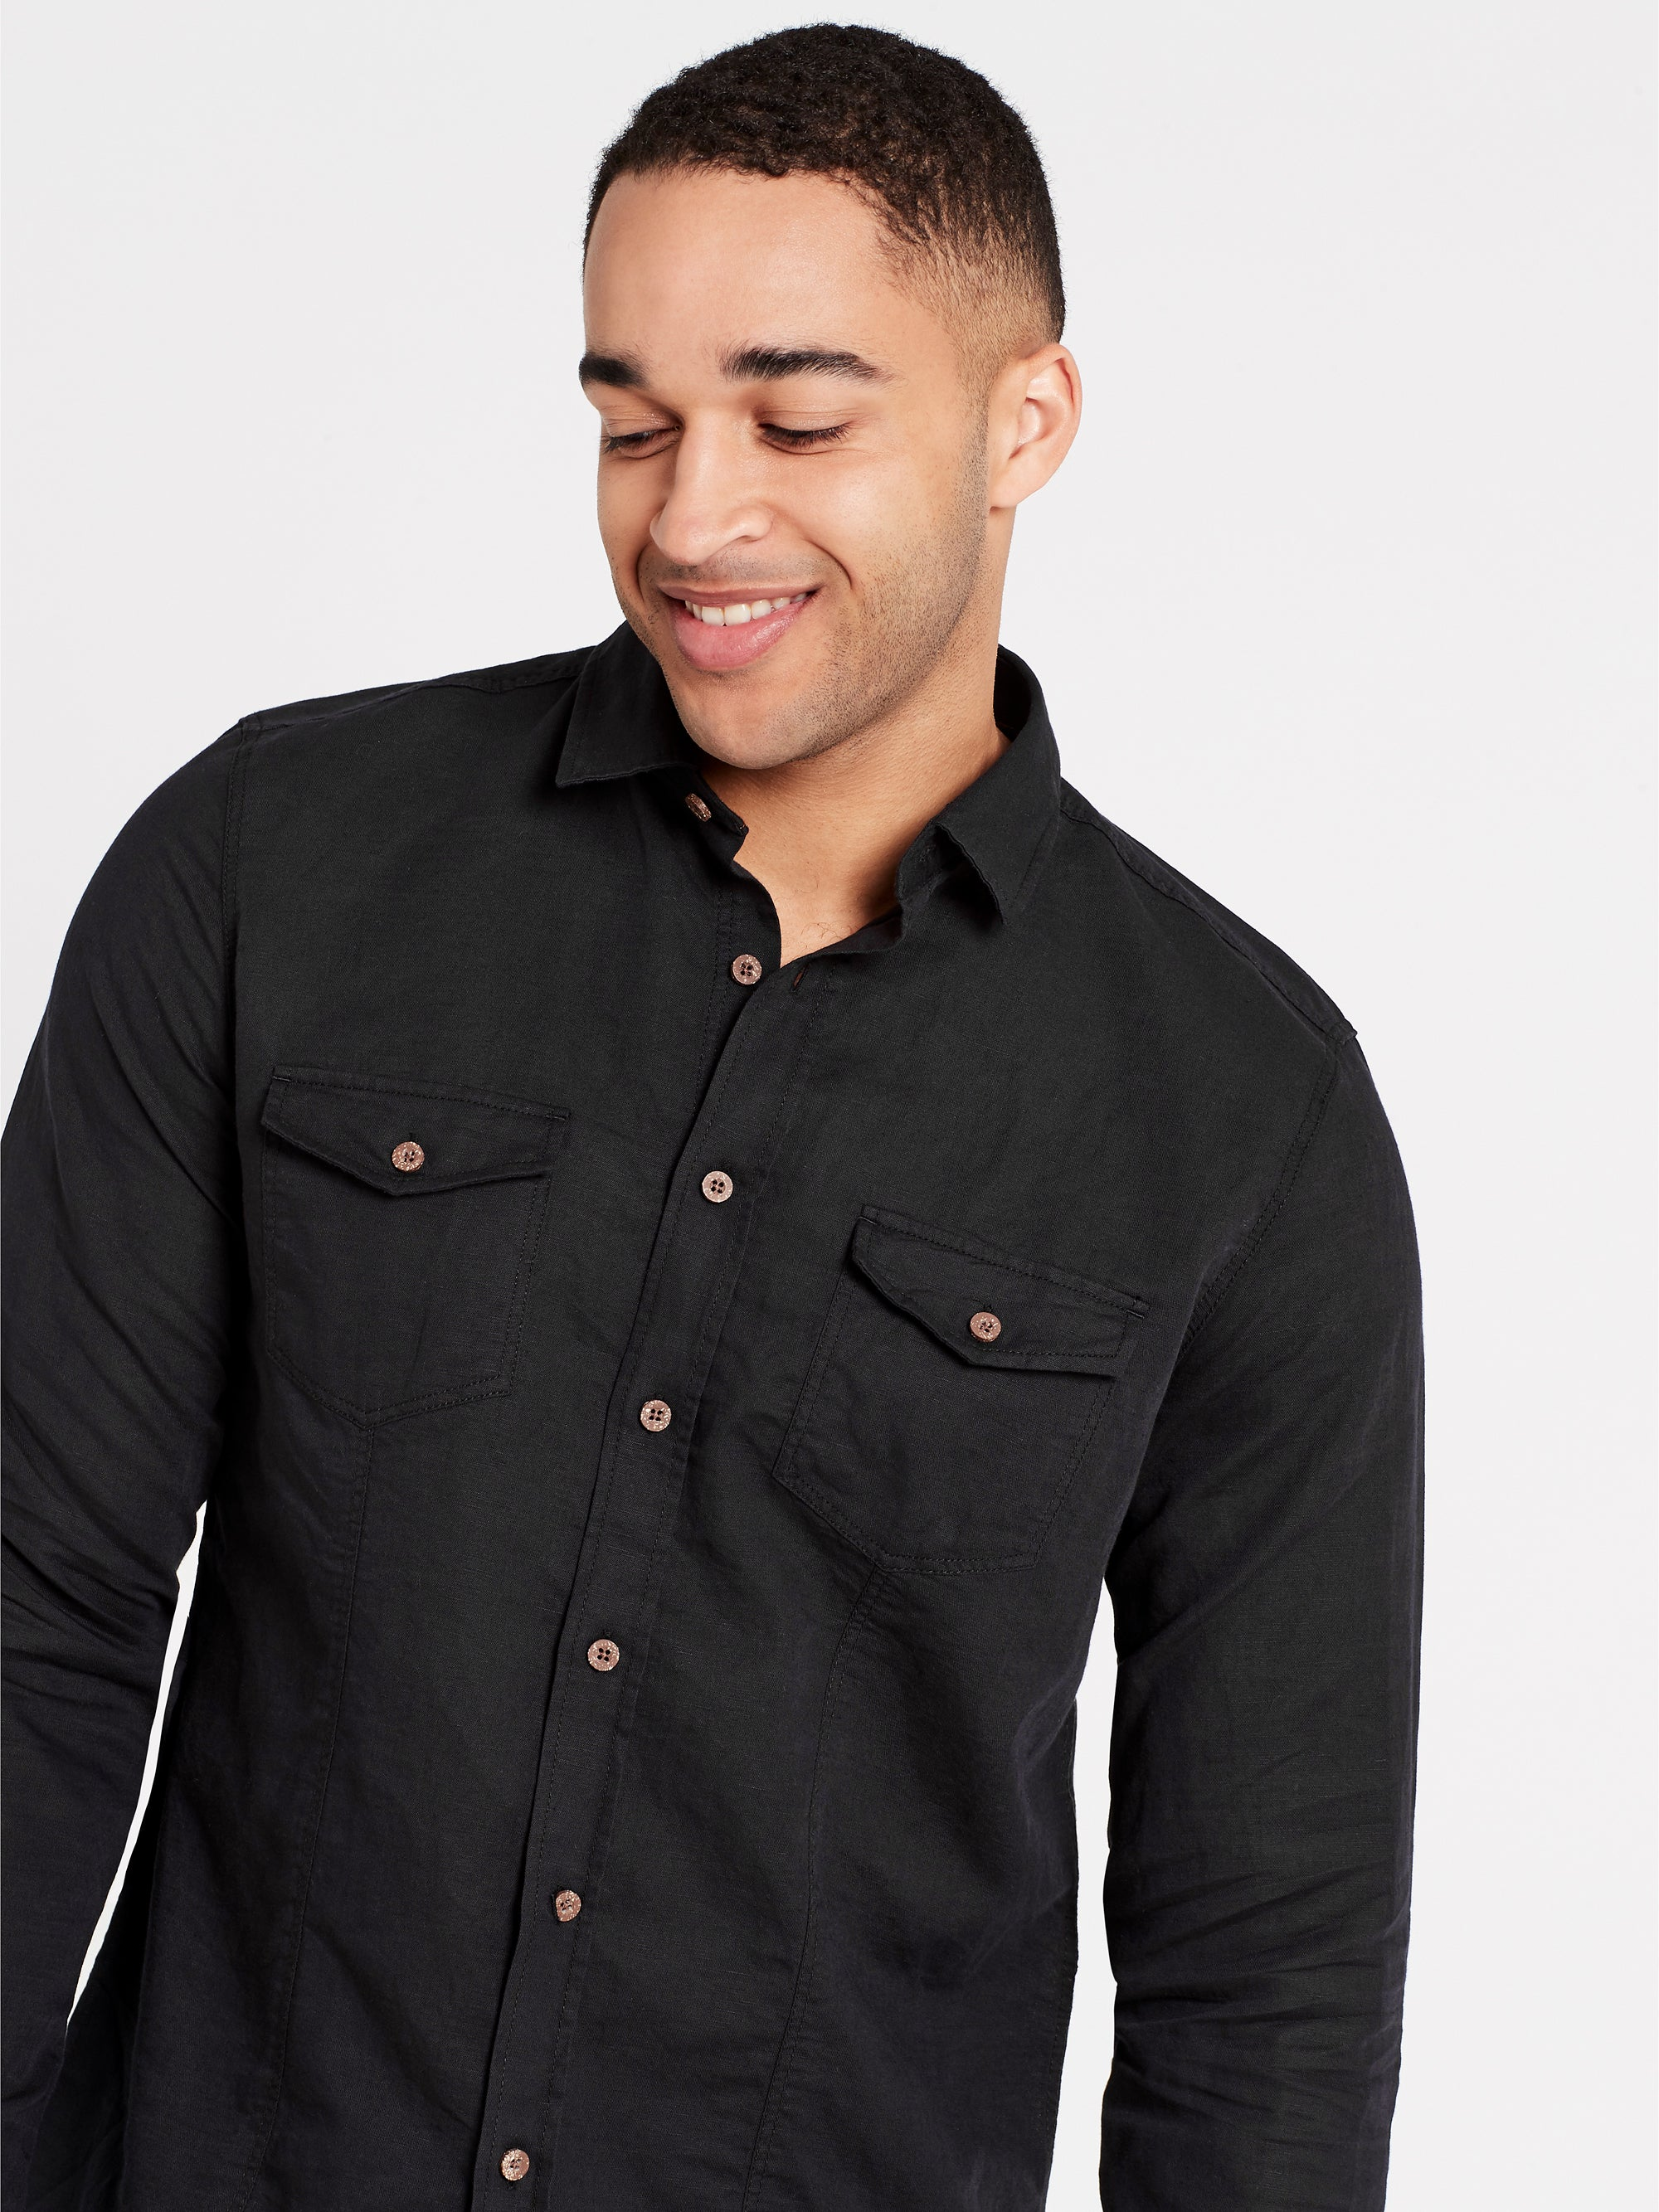 Mens Long Sleeve Shirt Black